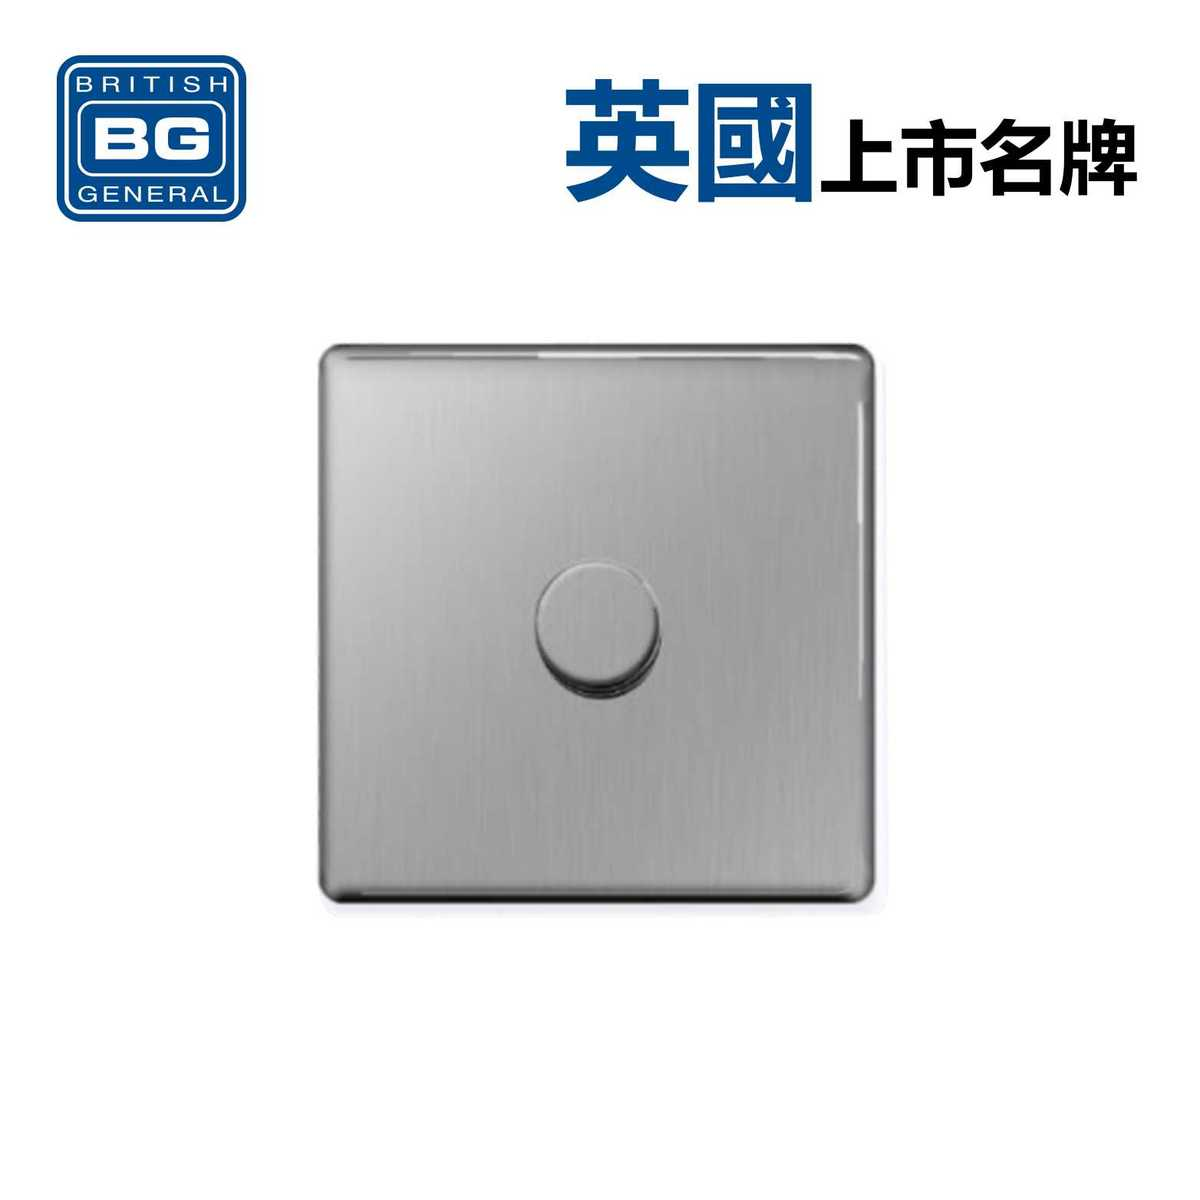 1-Gang 2-Way 400W Dimmer Switch -Flatplate Brushed Steel (Model: FBS81P)